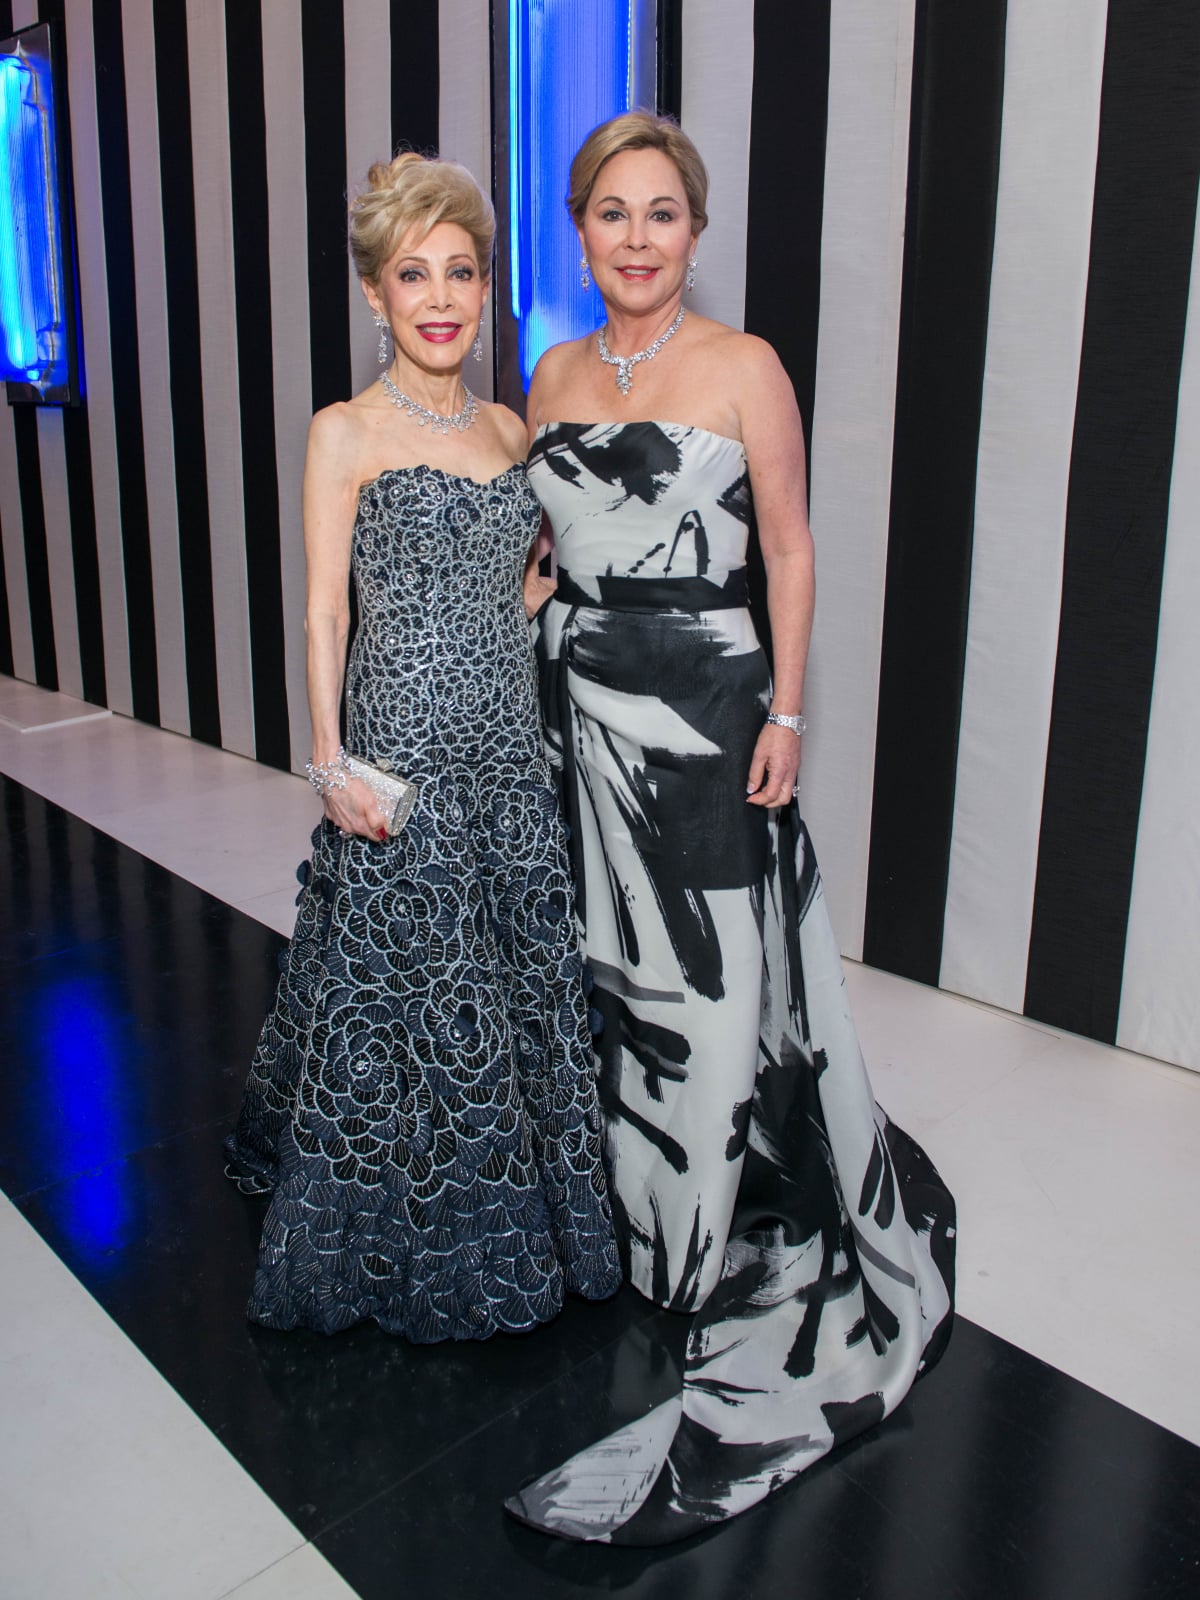 News, Shelby, MFAH gala gowns, Oct. 2015 Margaret Williams in Carolina Herrera, Nancy Kinder in Rueben Singer